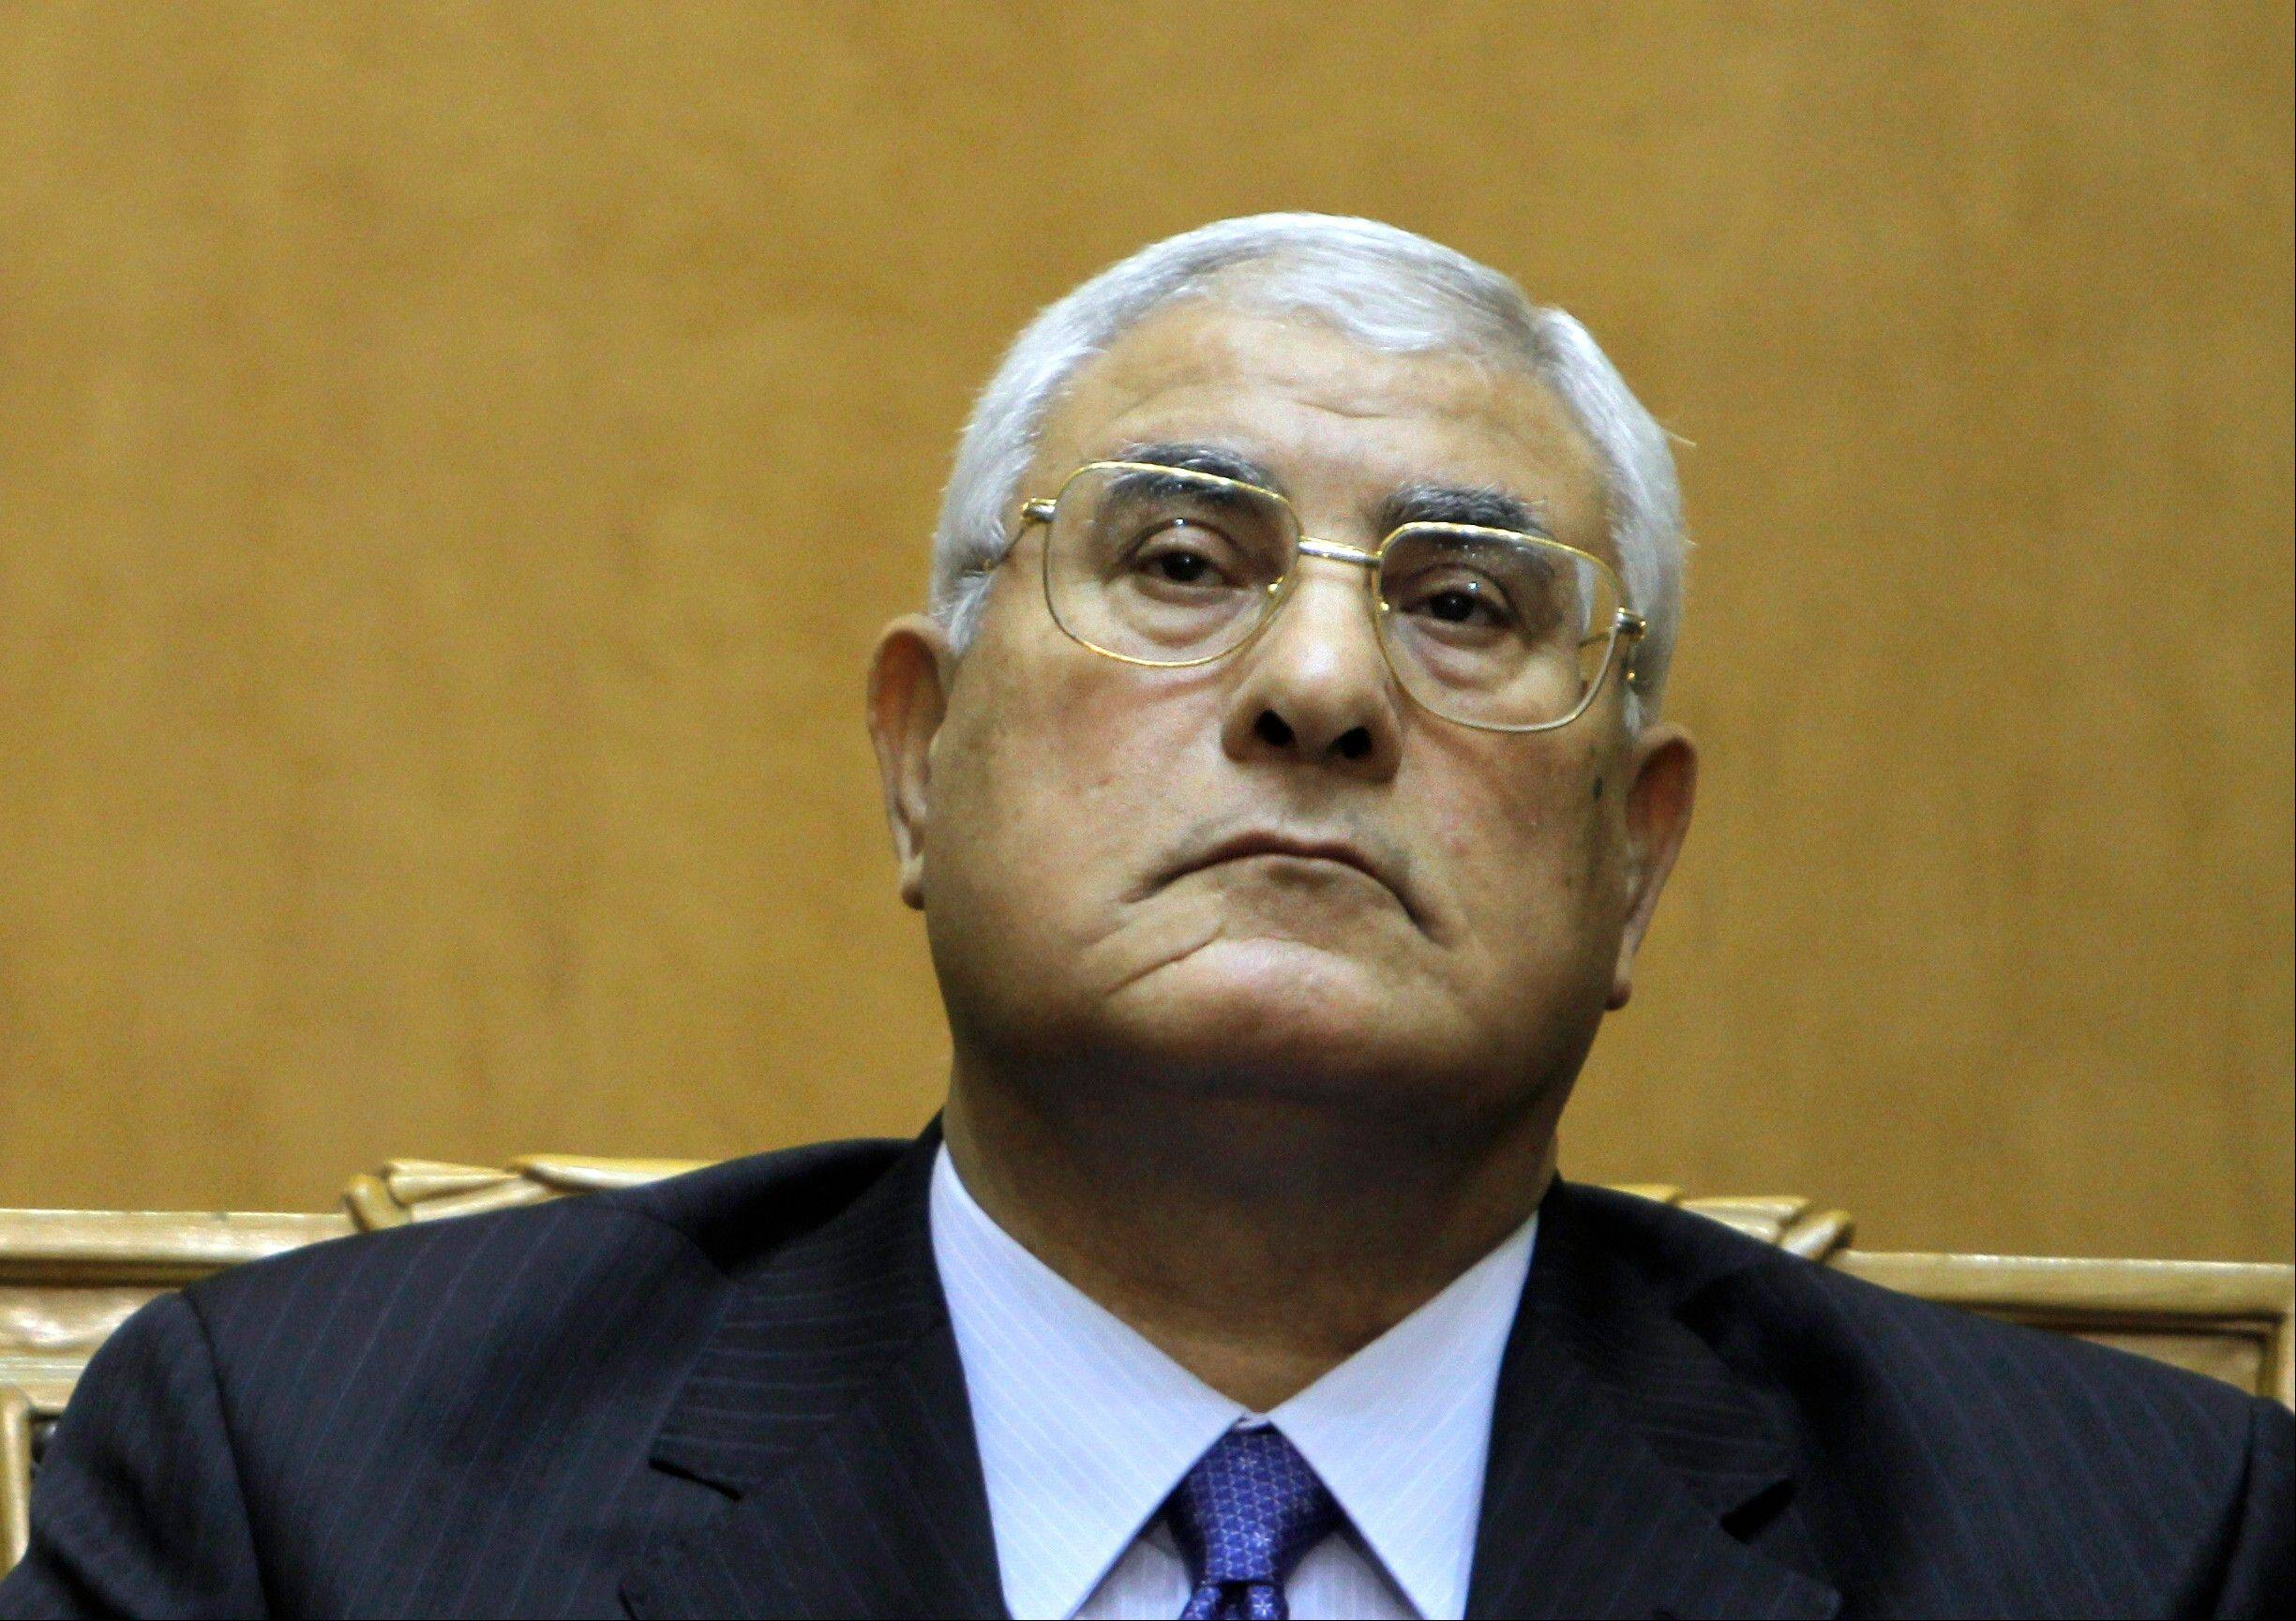 In this file photo taken Thursday, July 4, 2013, Egypt�s chief justice Adly Mansour listens to a speech during his swearing in as interim president. Interim president Mansour held talks Saturday, July 6, 2013, with the army chief and interior minister after an outburst of violence between supporters and opponents of ousted leader Mohammed Morsi that killed at least 36 people across the country and deepened the battle lines in the divided nation.